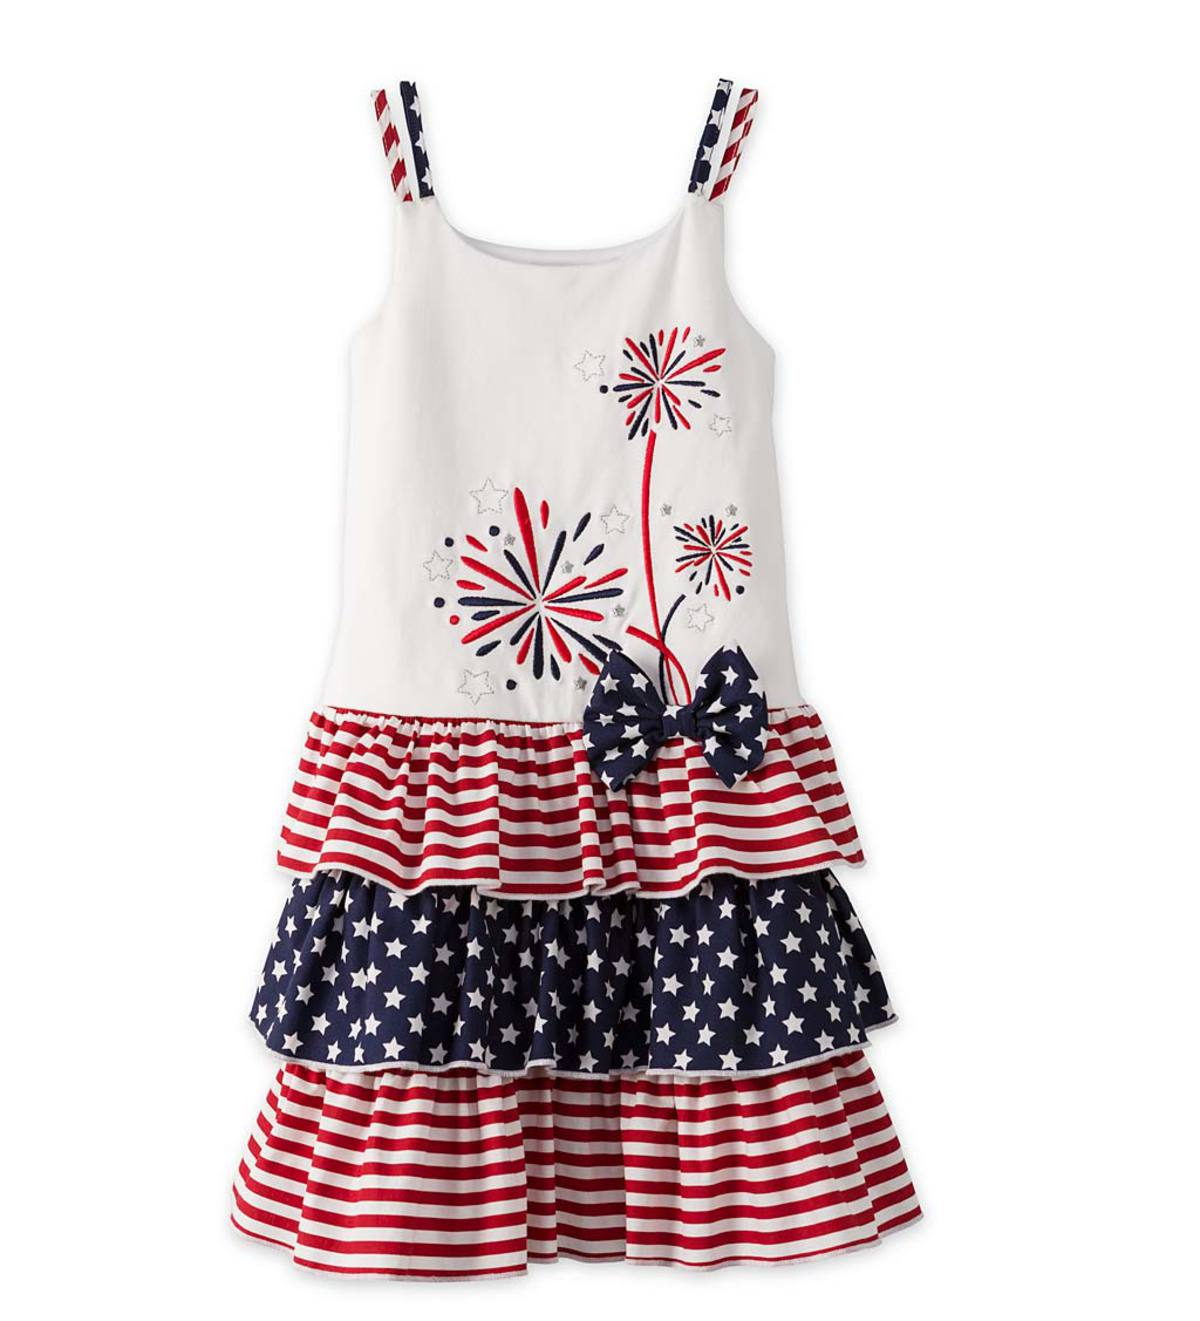 Fireworks Tiered Dress - Navy - 2T